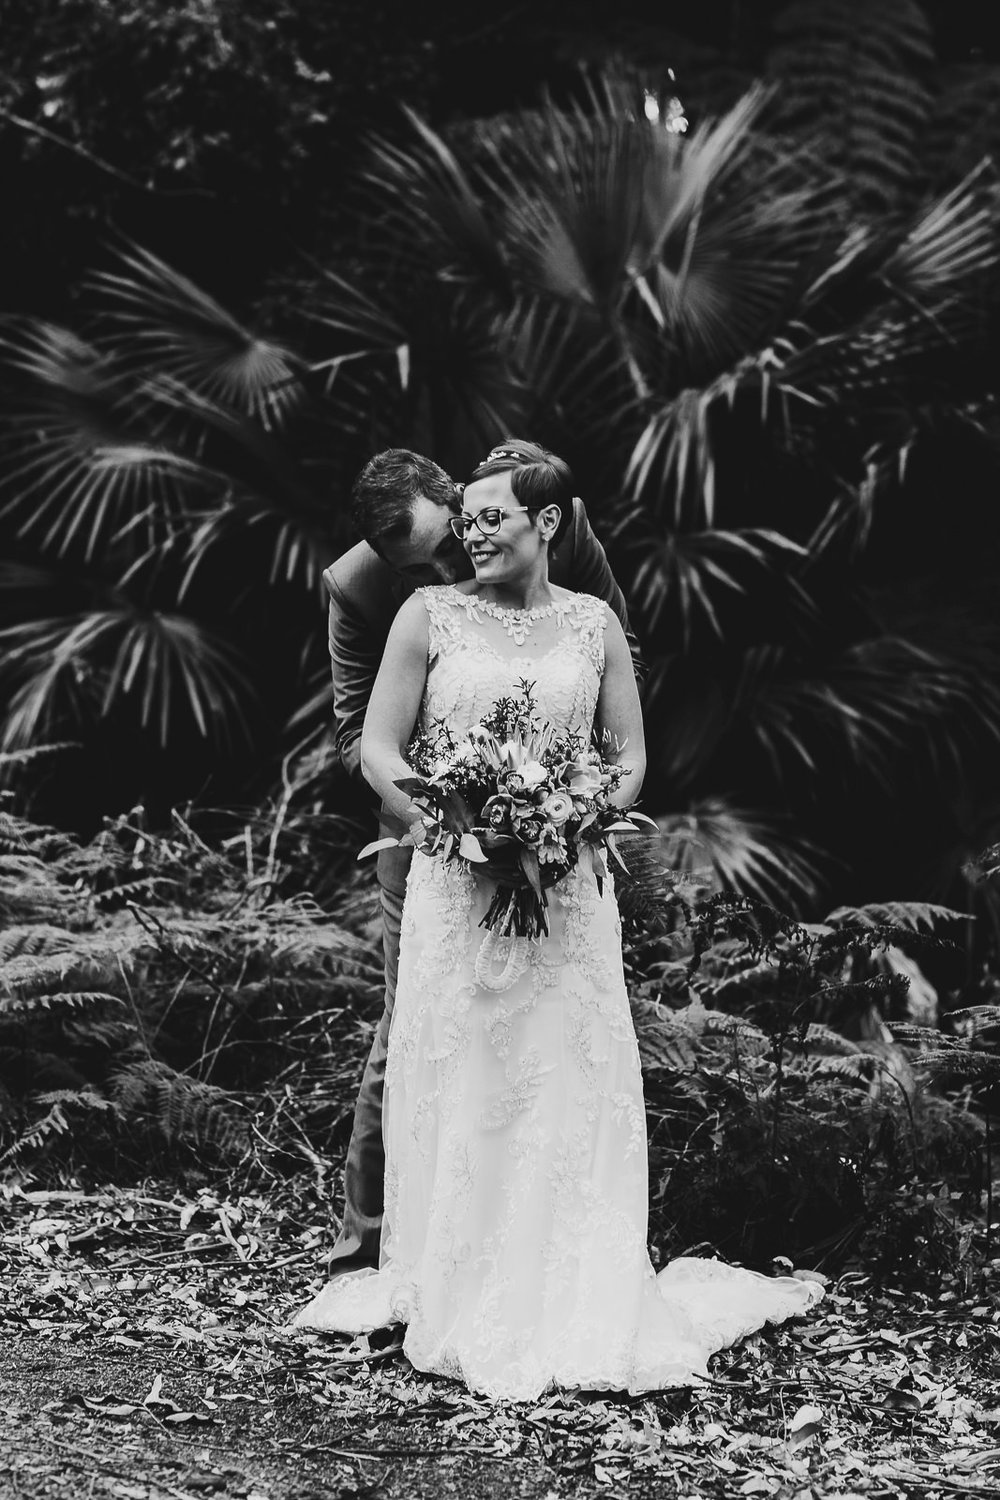 20170909 - Megan & Dave Wedding 296-2.jpg